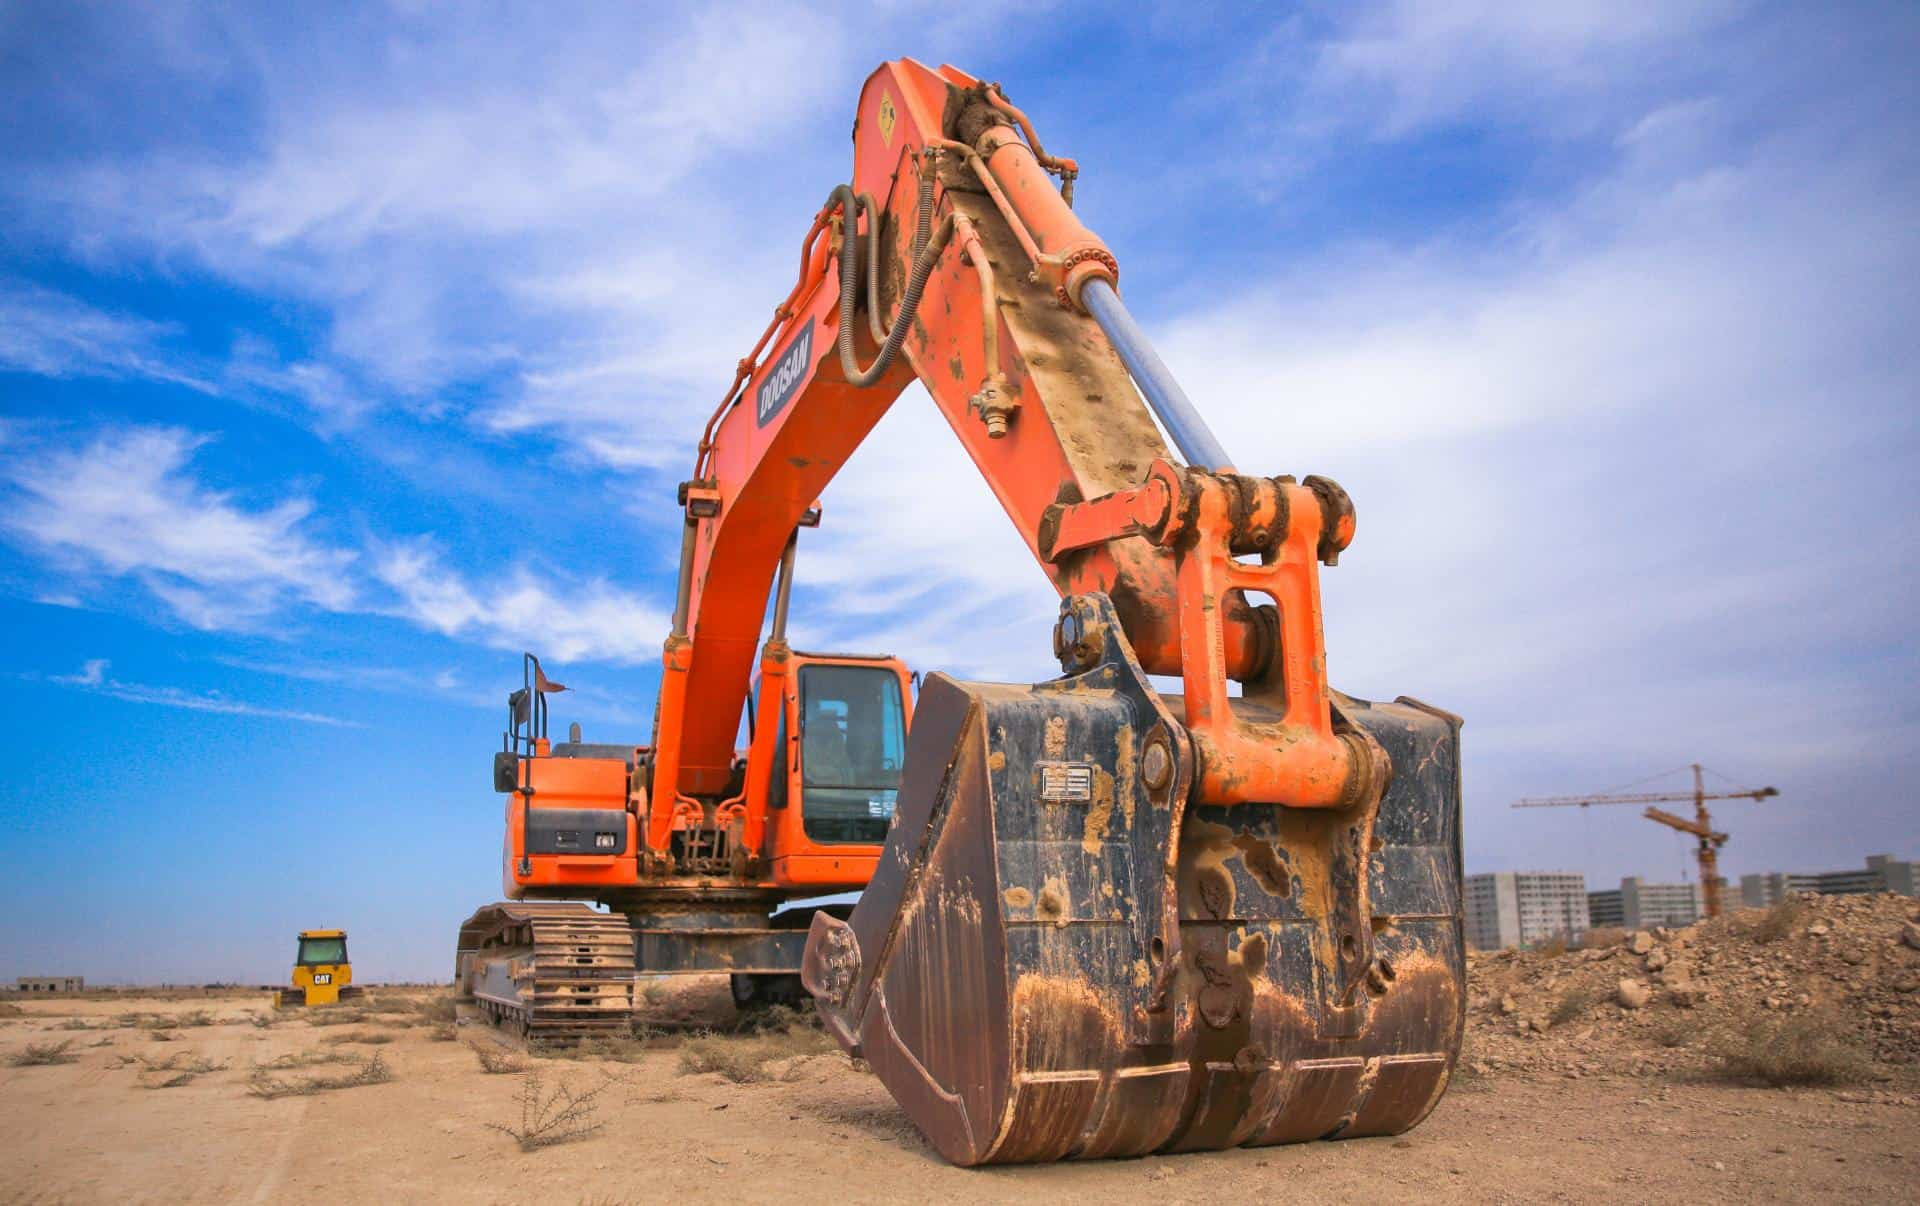 Excavator - BUILDM Construction Services - Construction in Baltimore MD and Washington DC